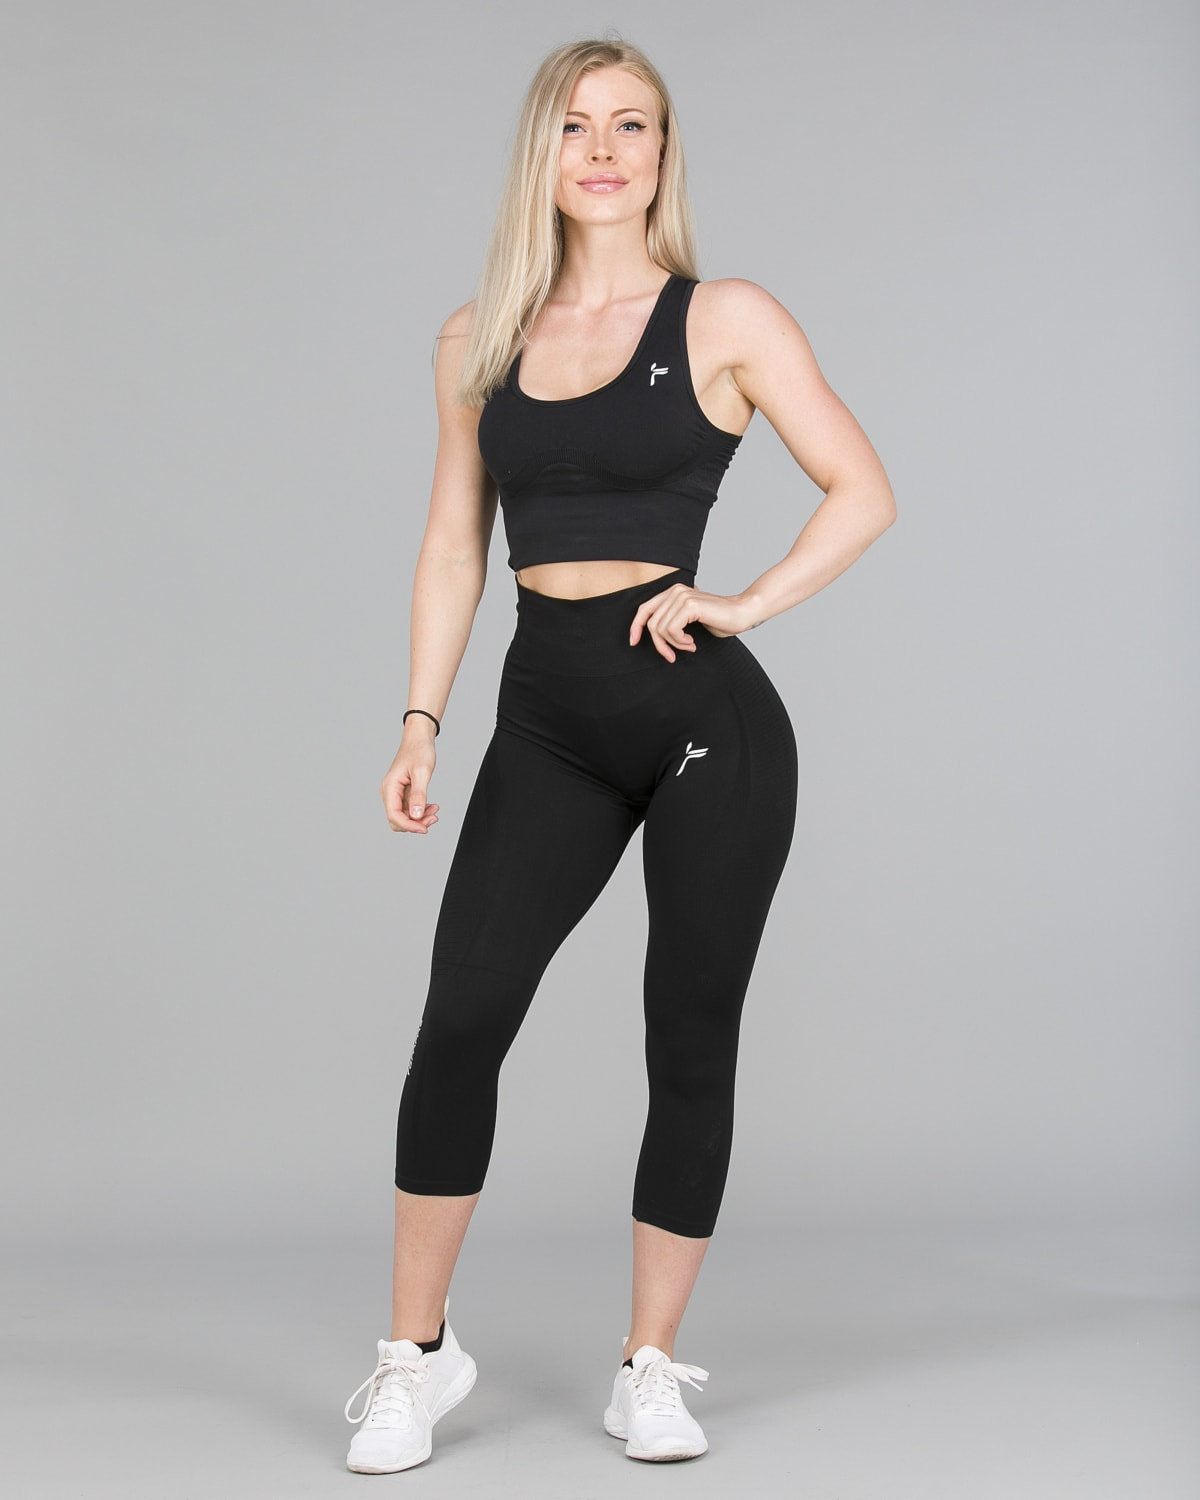 FAMME – Vortex Leggings 7:8 – Black3